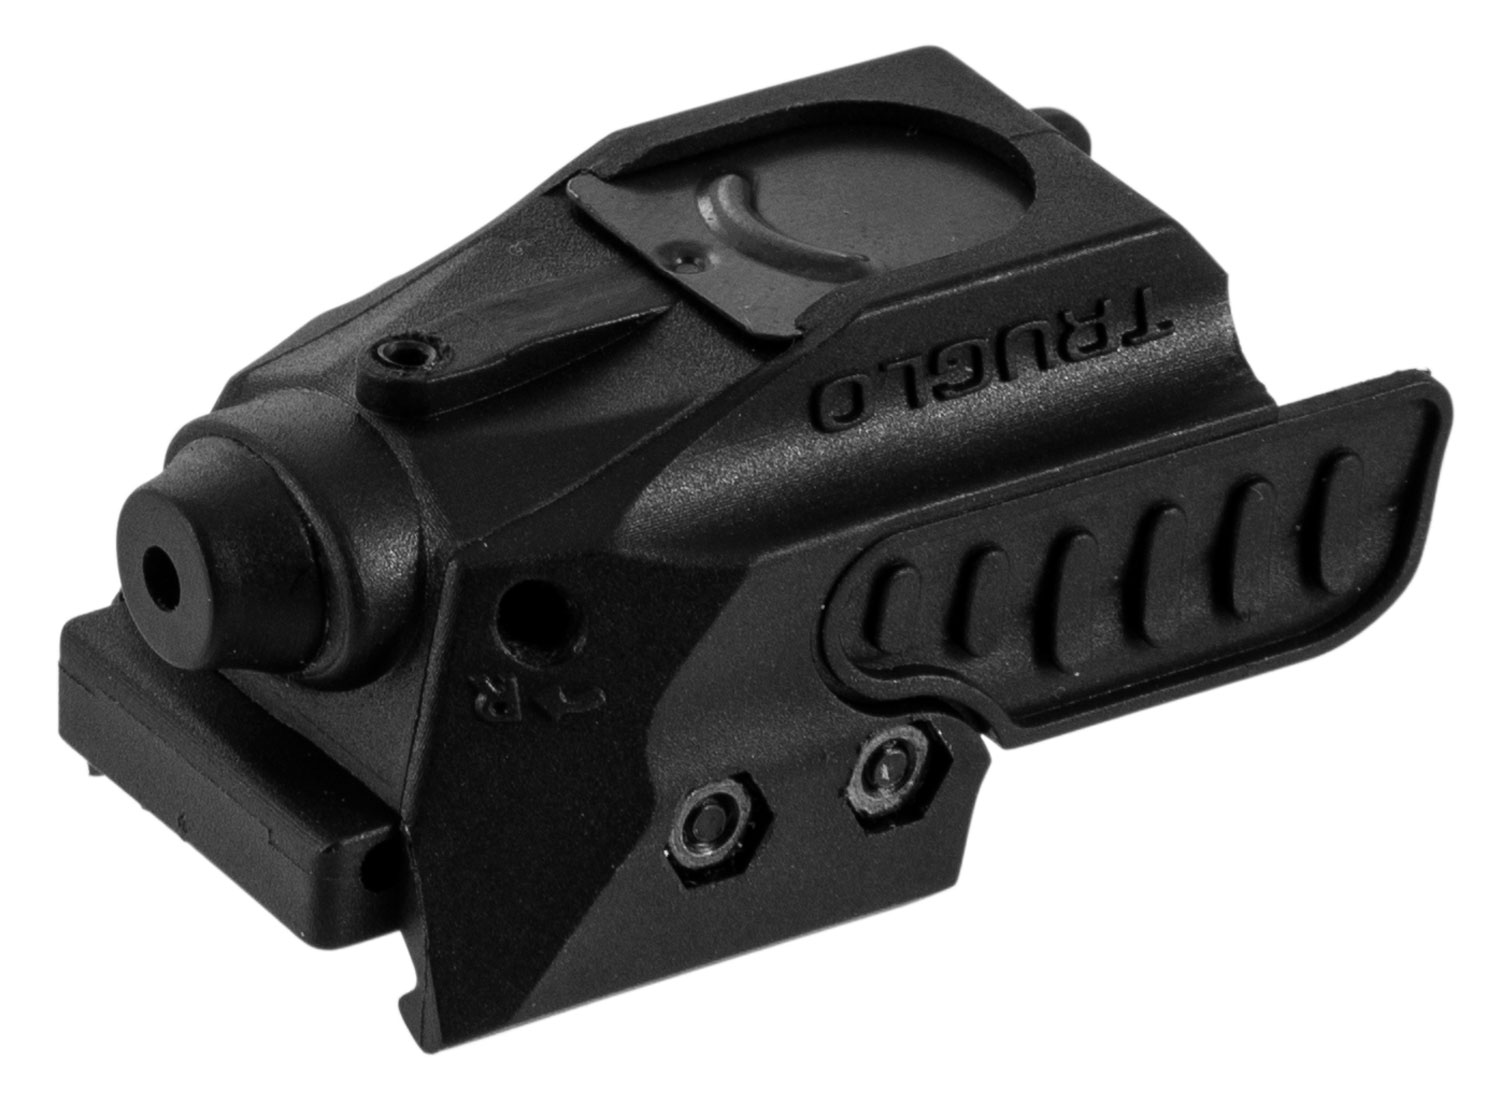 TRUGLO LASER SIGHT-LINE RED LASER PICATINNY MOUNT